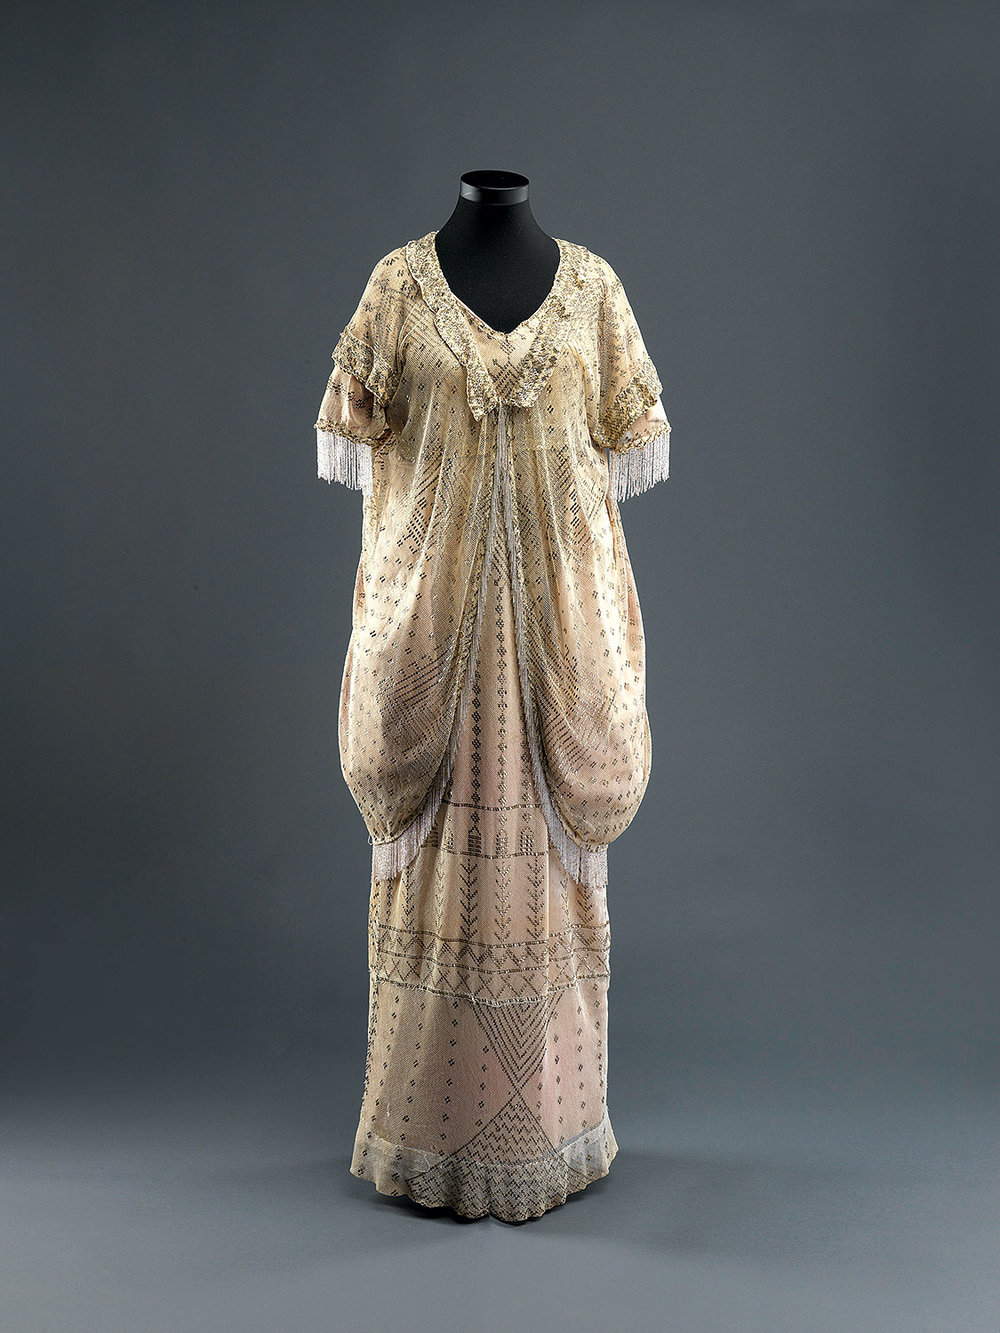 VEILED MEANINGS: WOMAN'S ENSEMBLE of tulle and silver-tinsel embroidery, probably Alexandria, Egypt, 1920s.  Photograph by Elie Posner, courtesy of The Israel Museum, Jerusalem.